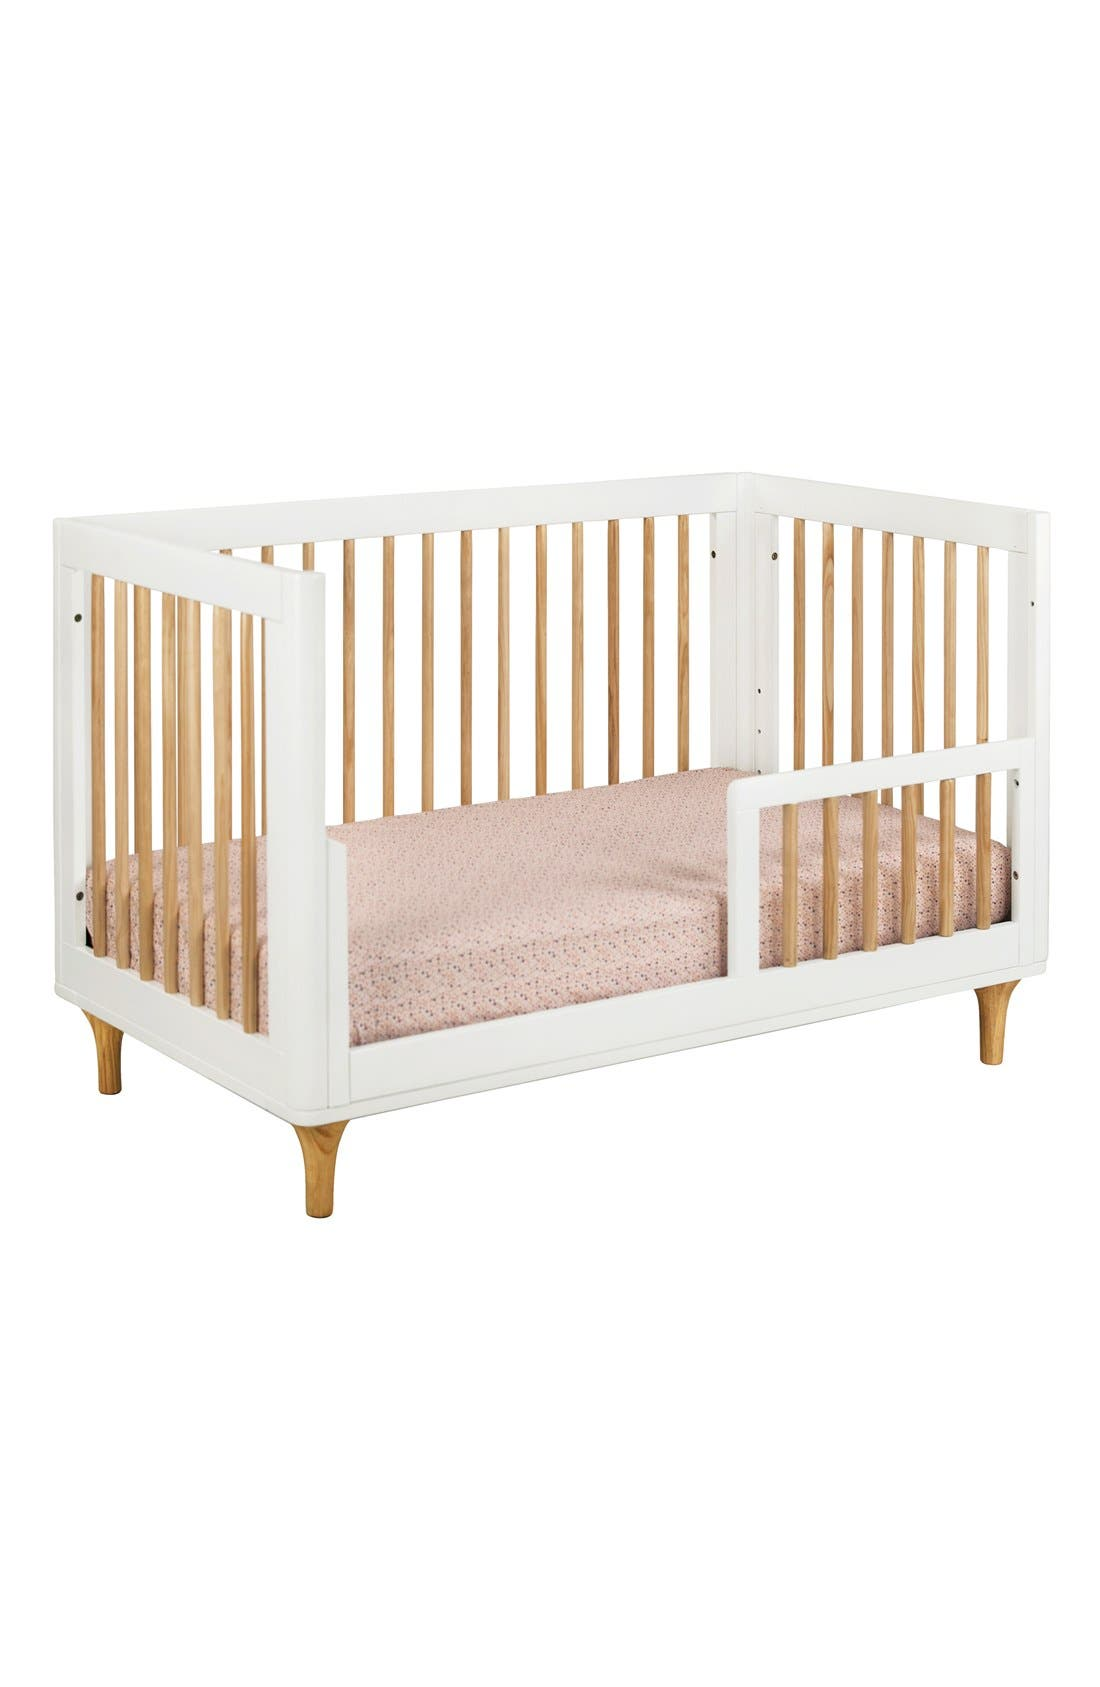 BABYLETTO, 'Lolly' 3-in-1 Convertible Crib, Alternate thumbnail 3, color, 250